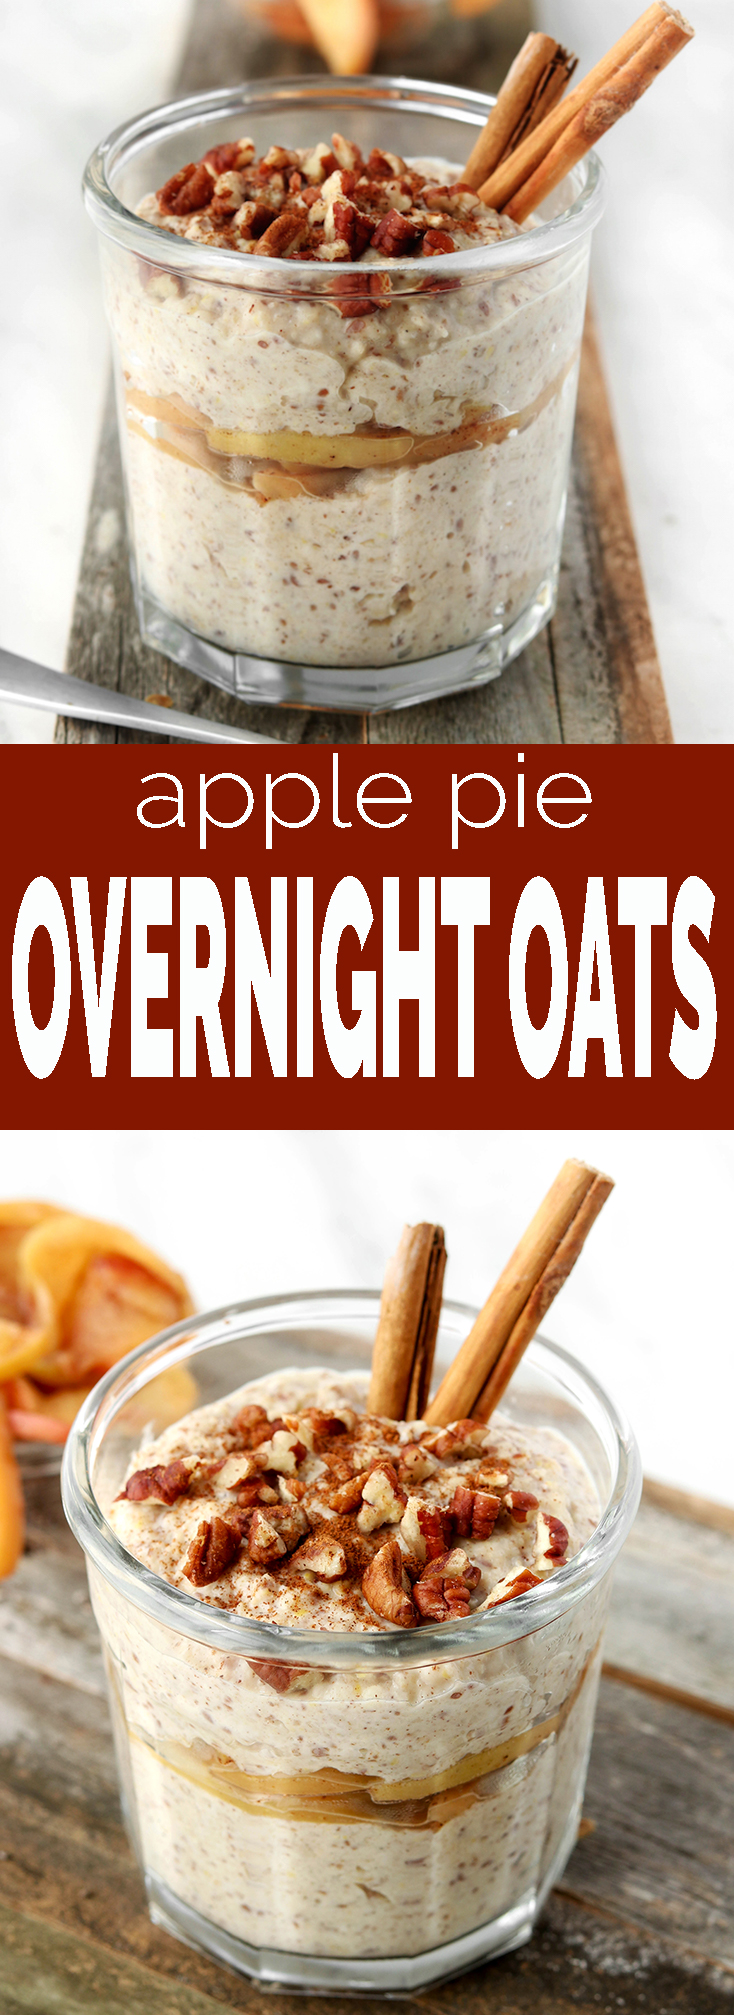 Apple Pie Overnight Oats make a fiber and protein rich breakfast ...